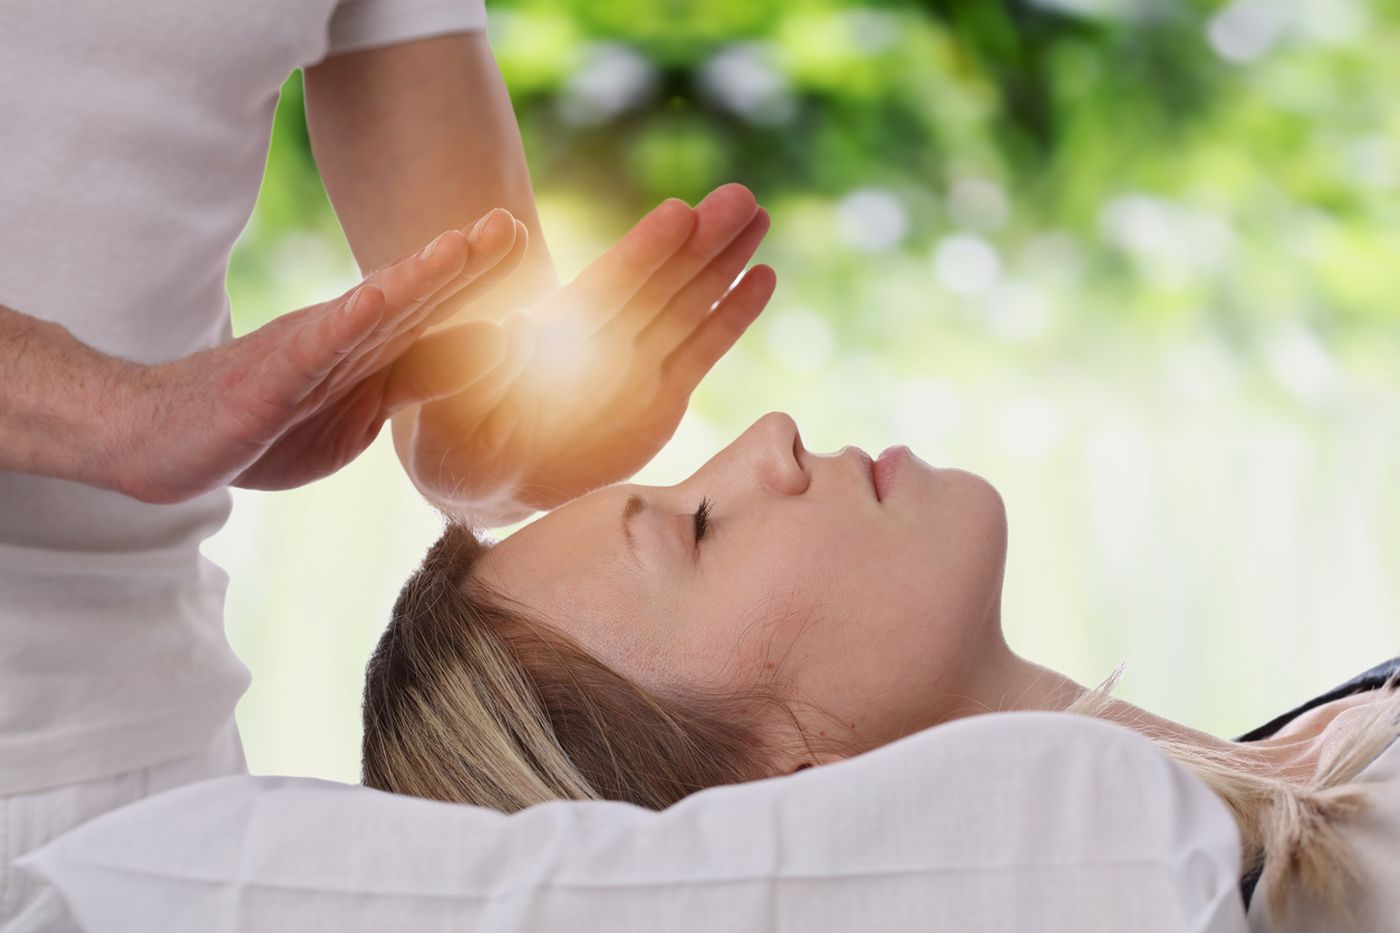 Does using complementary medicine for cancer reduce patients' survival?